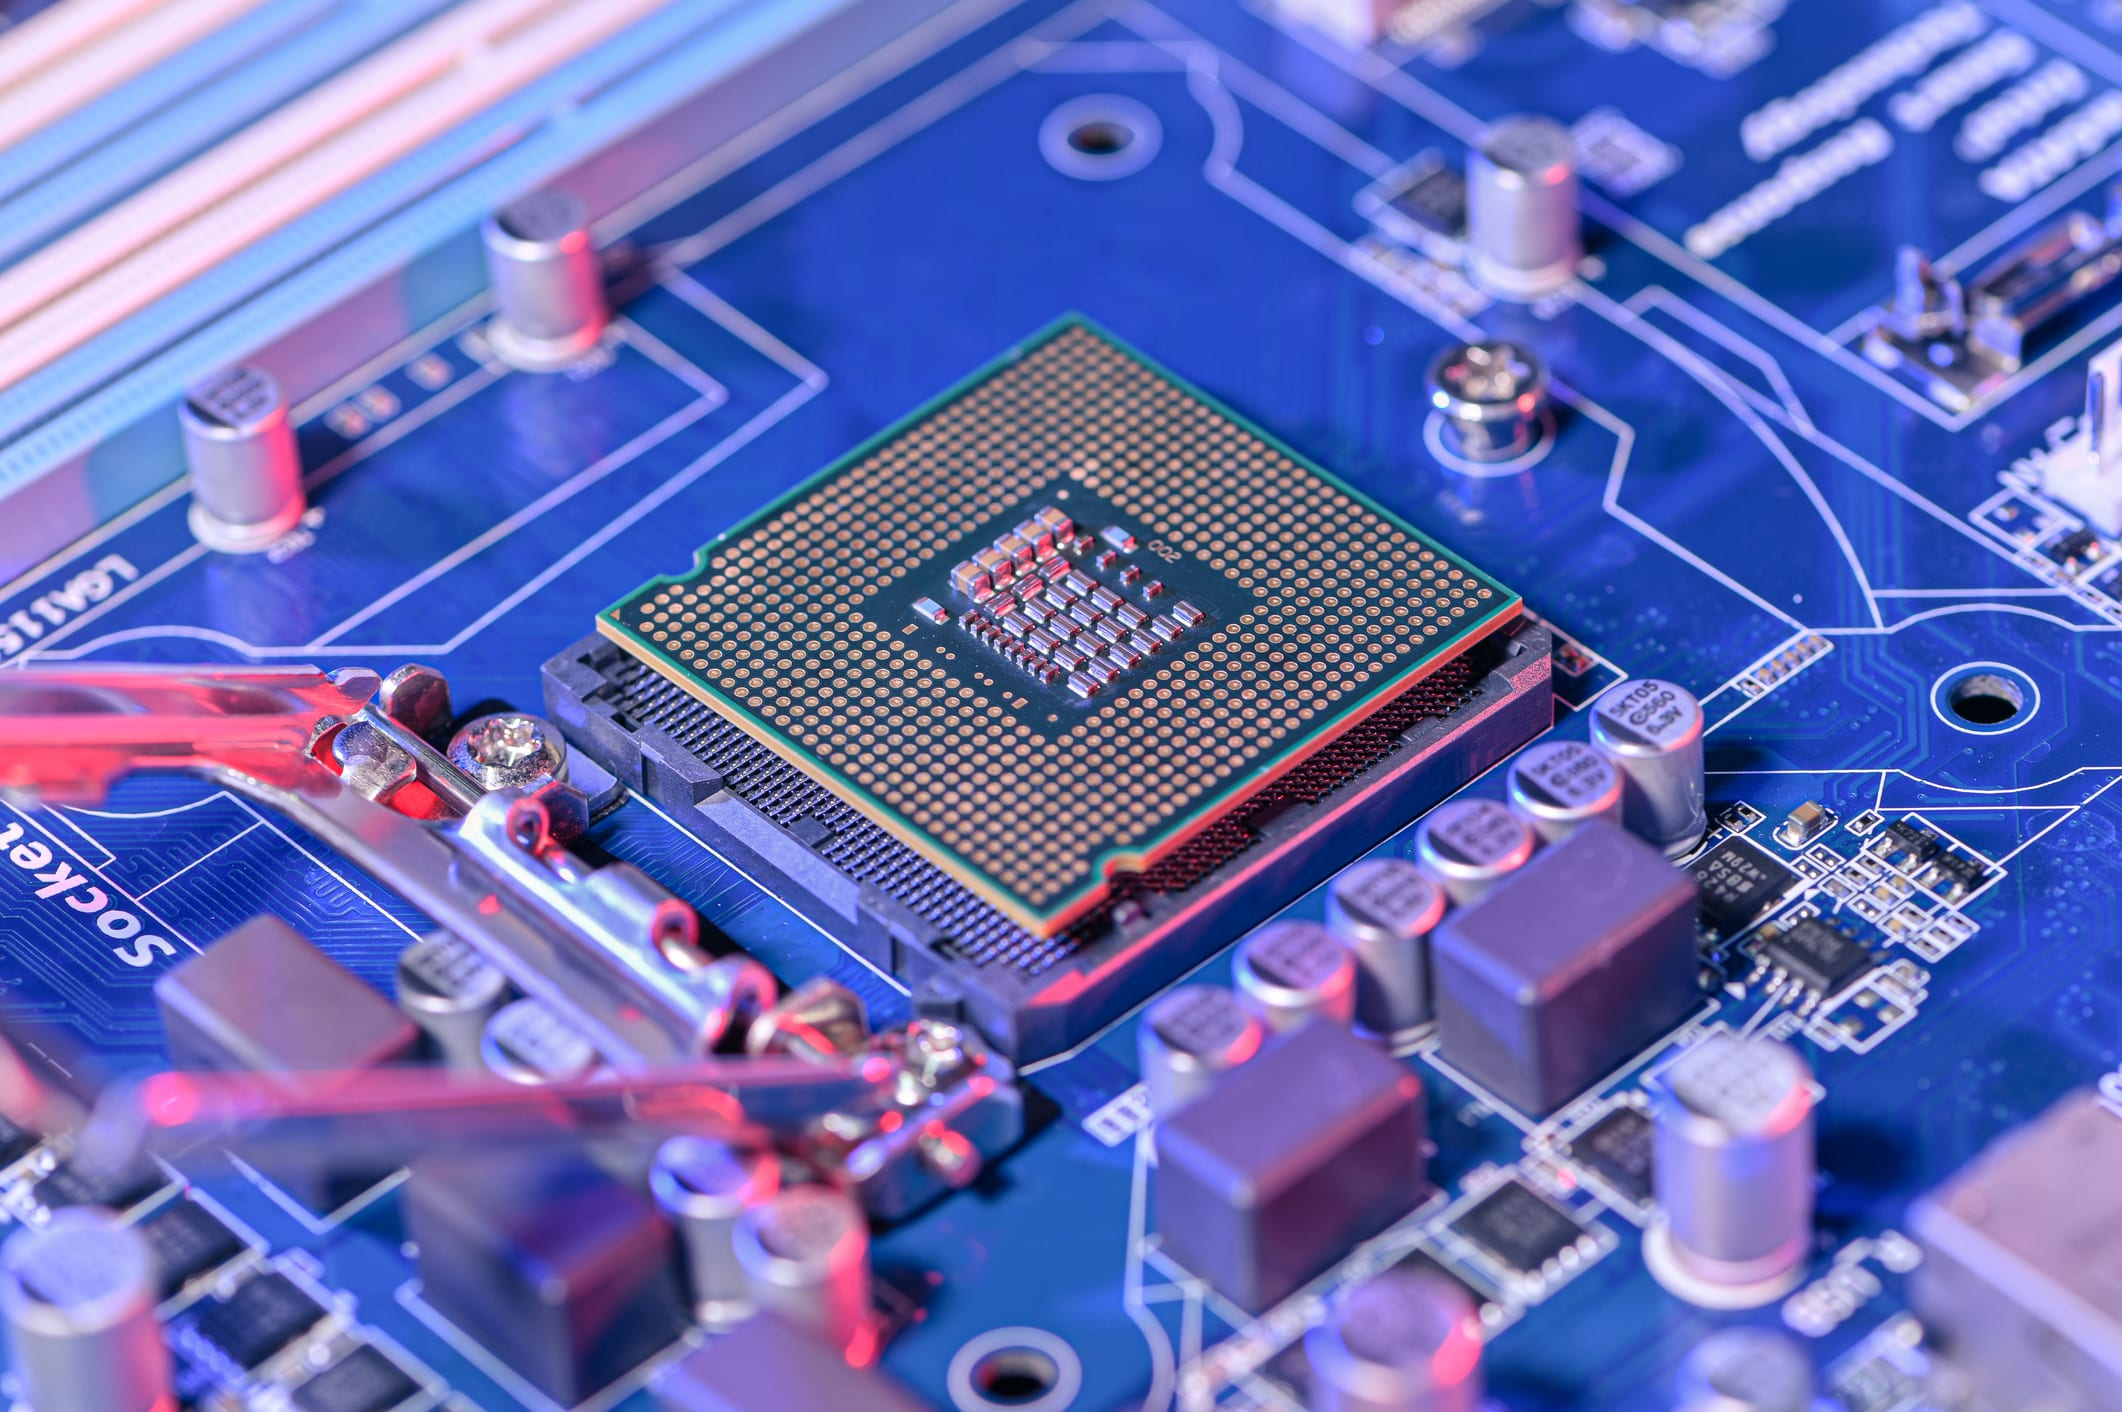 smic,-china's-largest-chipmaker,-plunges-19%-after-us.-says-it-could-blacklist-the-firm